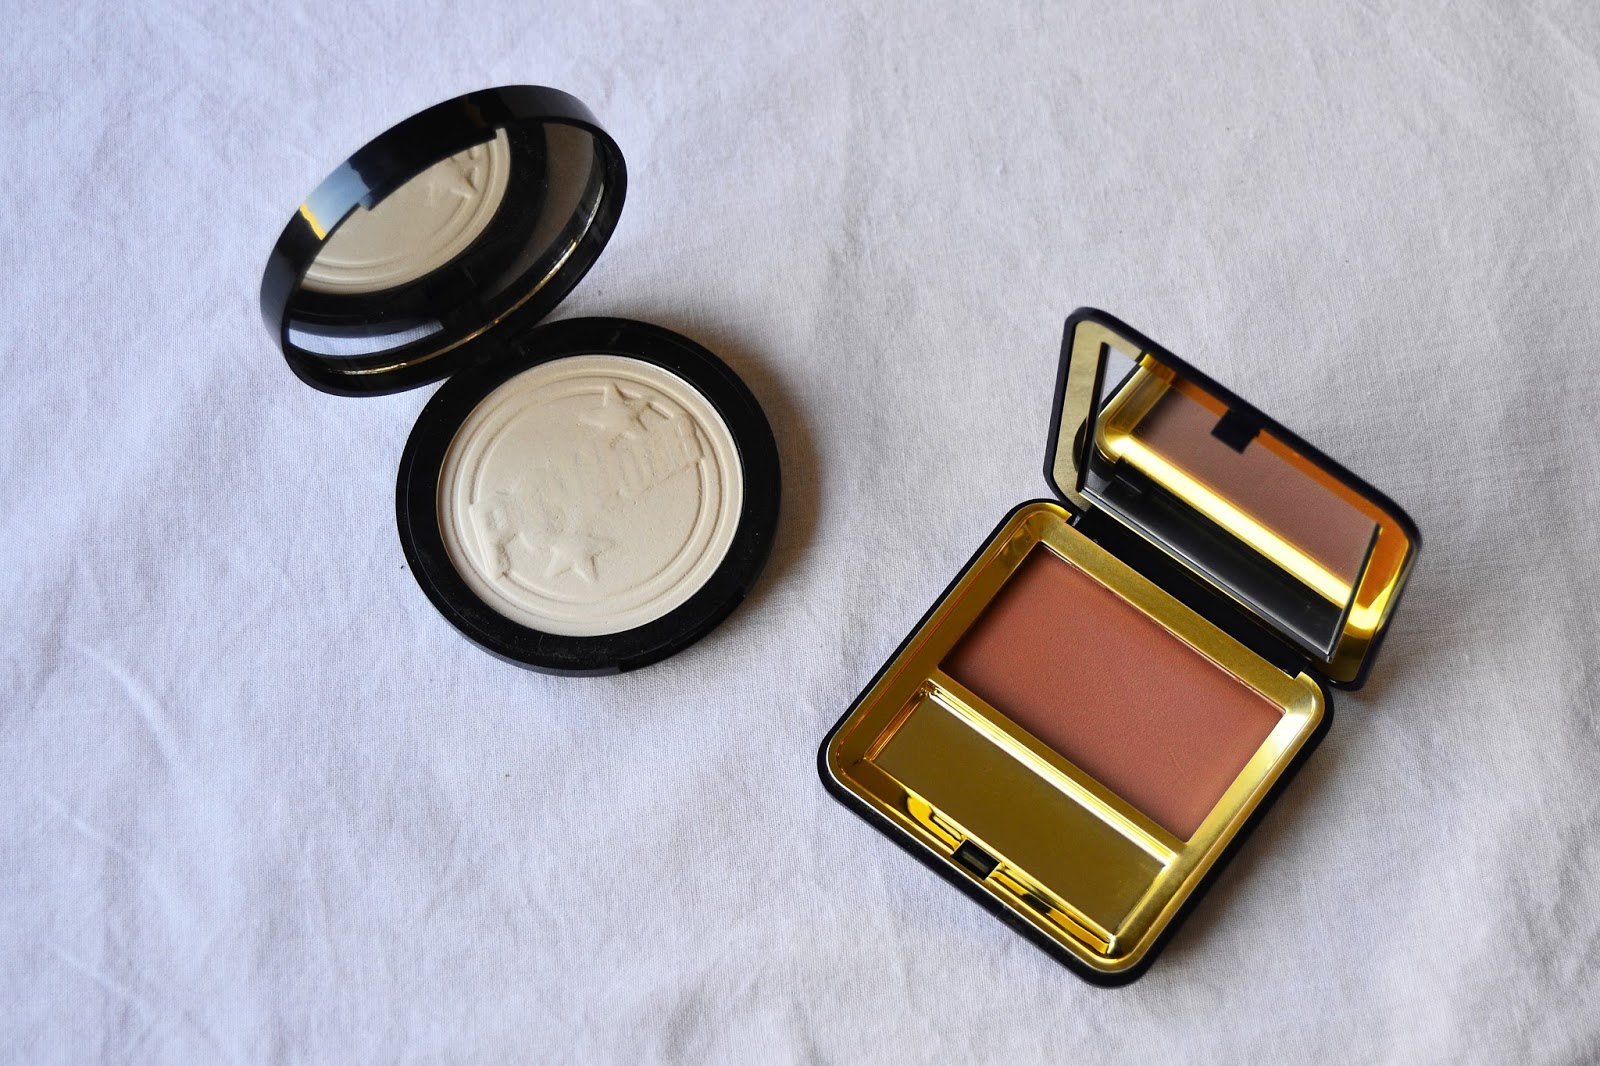 Esté Lauder Blush and Soap&Glory One Heck of a blot